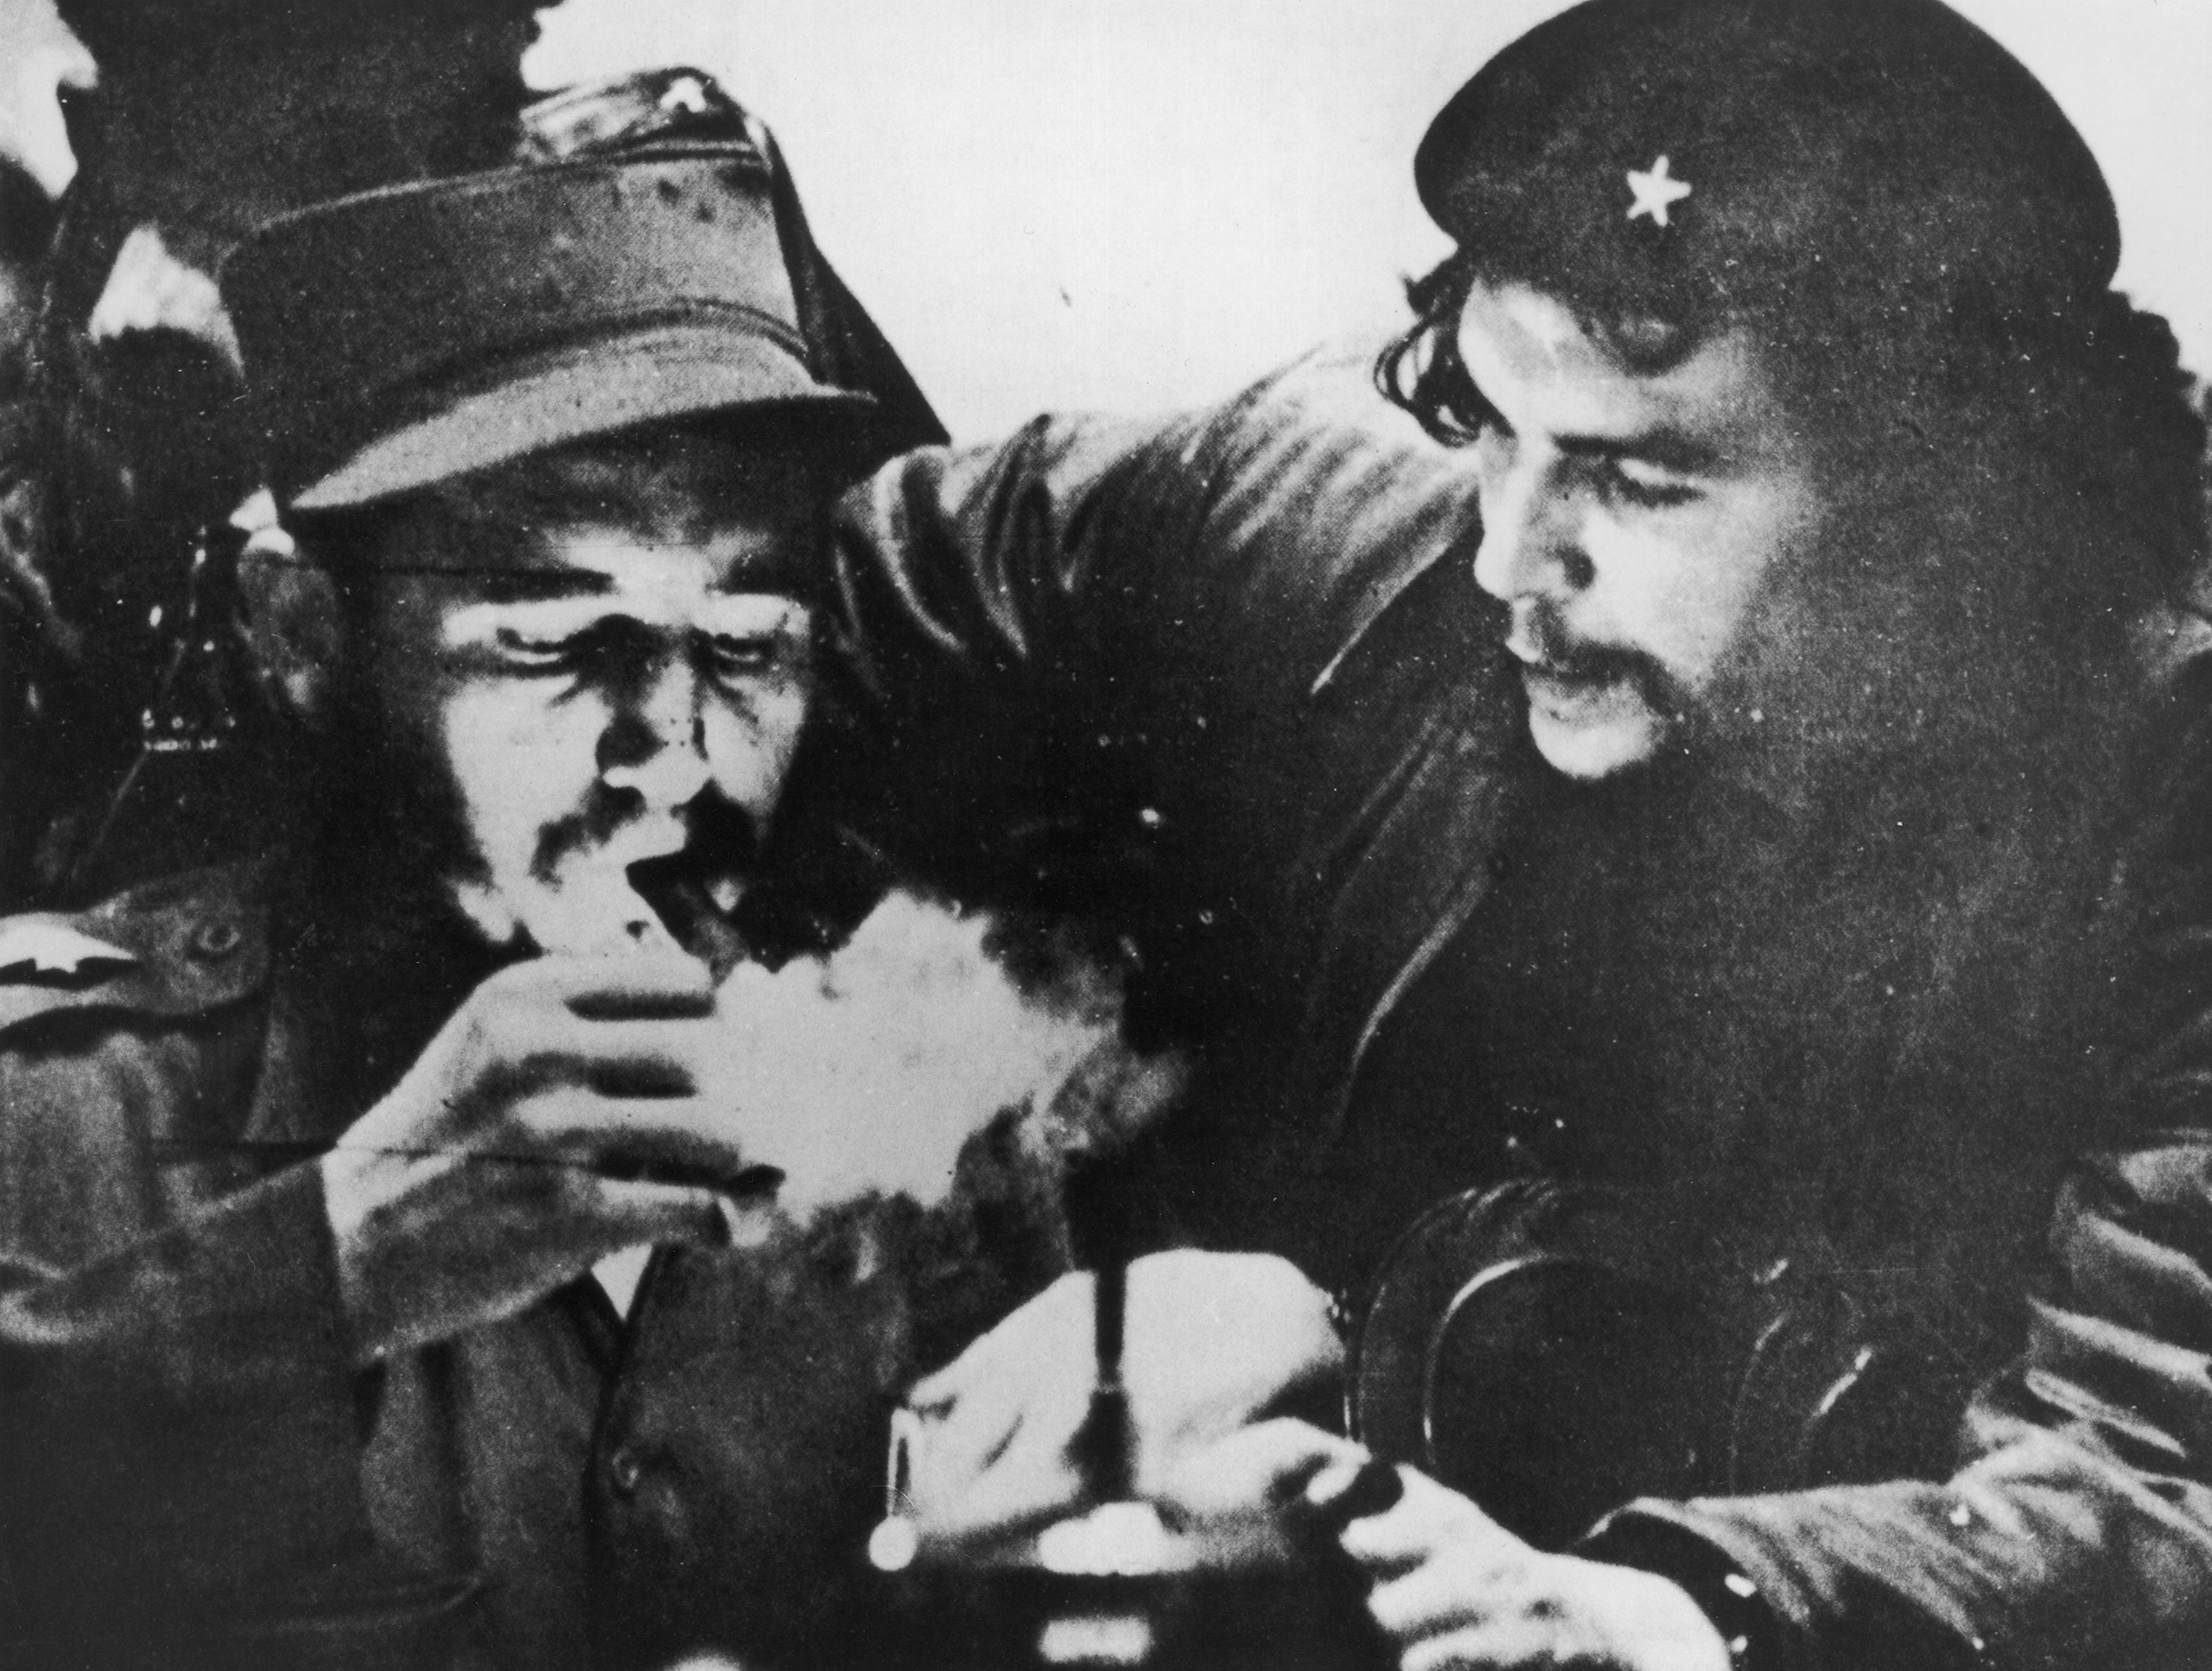 Cuban revolutionary Fidel Castro (left) lights his cigar while Argentine revolutionary Che Guevara looks on in the early days of their guerrilla campaign in the Sierra Maestra Mountains of Cuba, circa 1956. Castro wears a military uniform while Guevara wears fatigues and a beret.